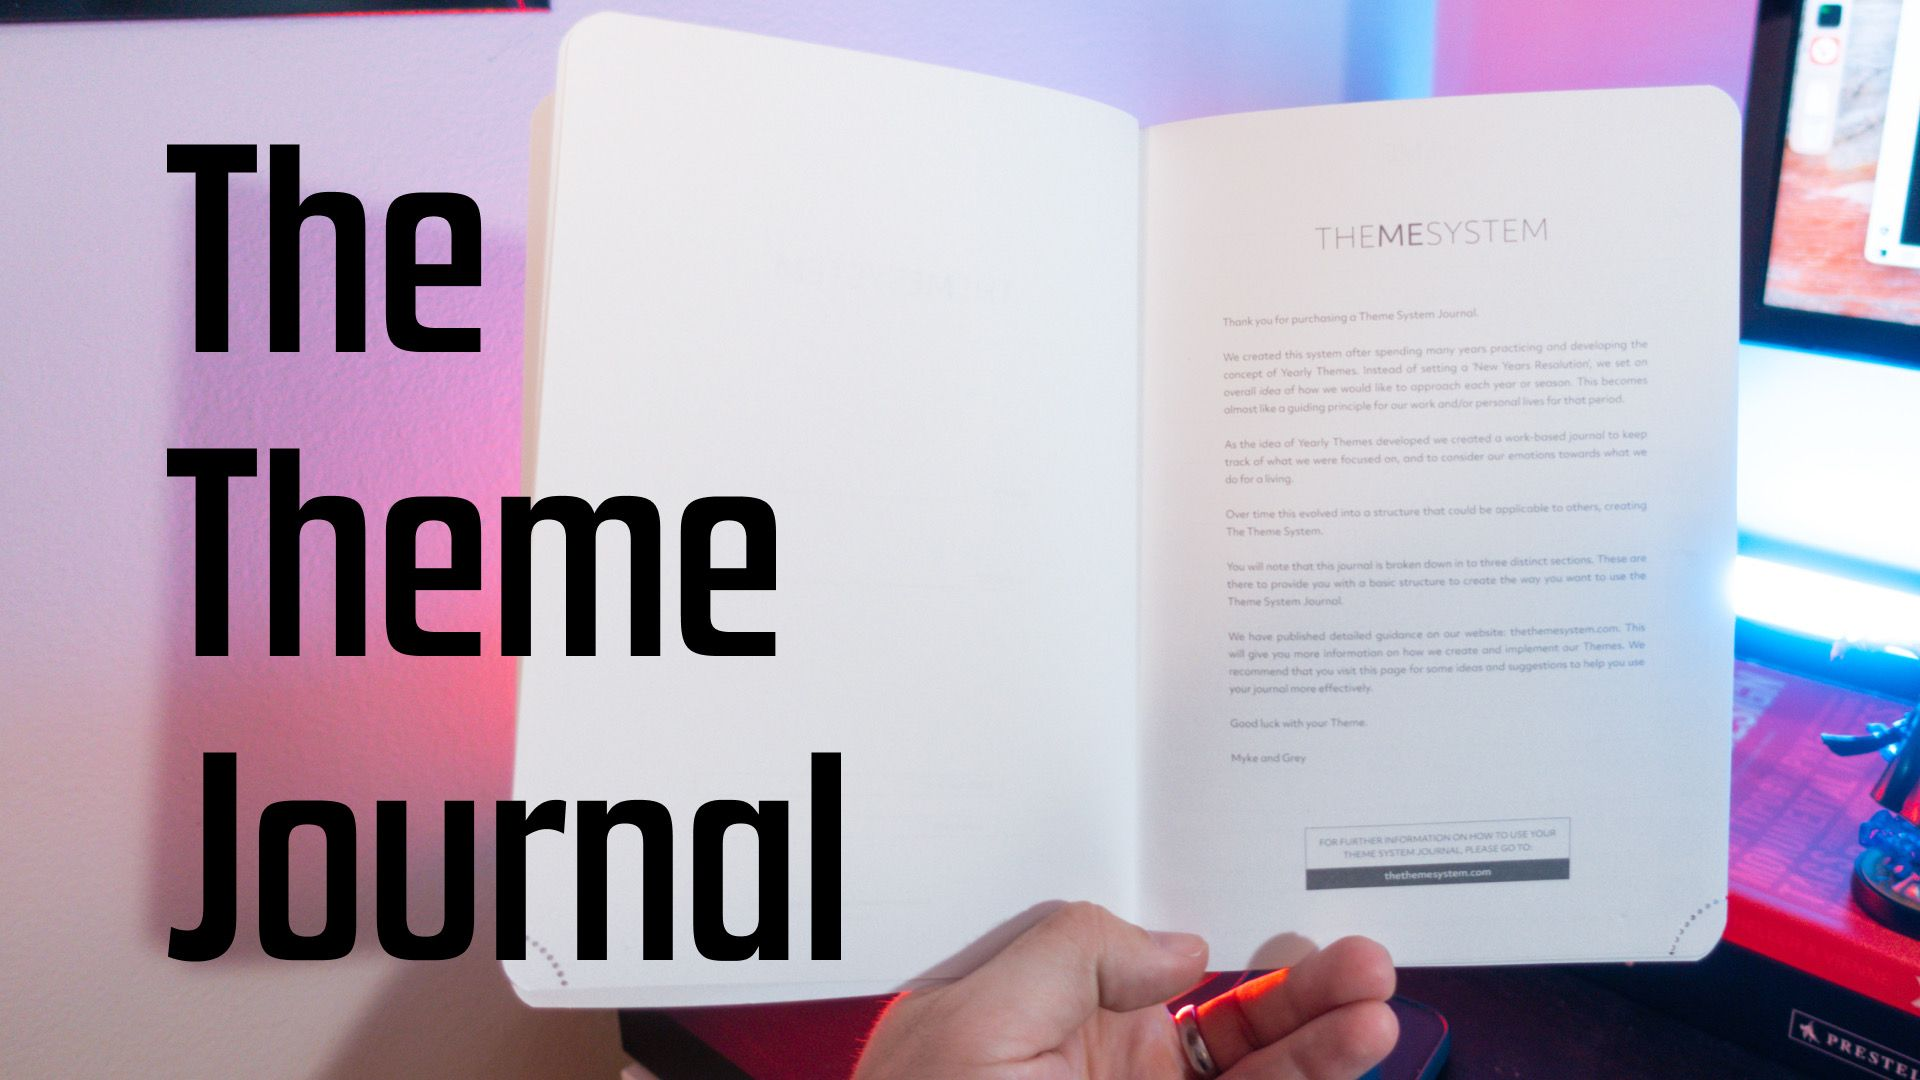 The Theme System, the Theme Journal and why 80% of people don't achieve their New Year's resolutions